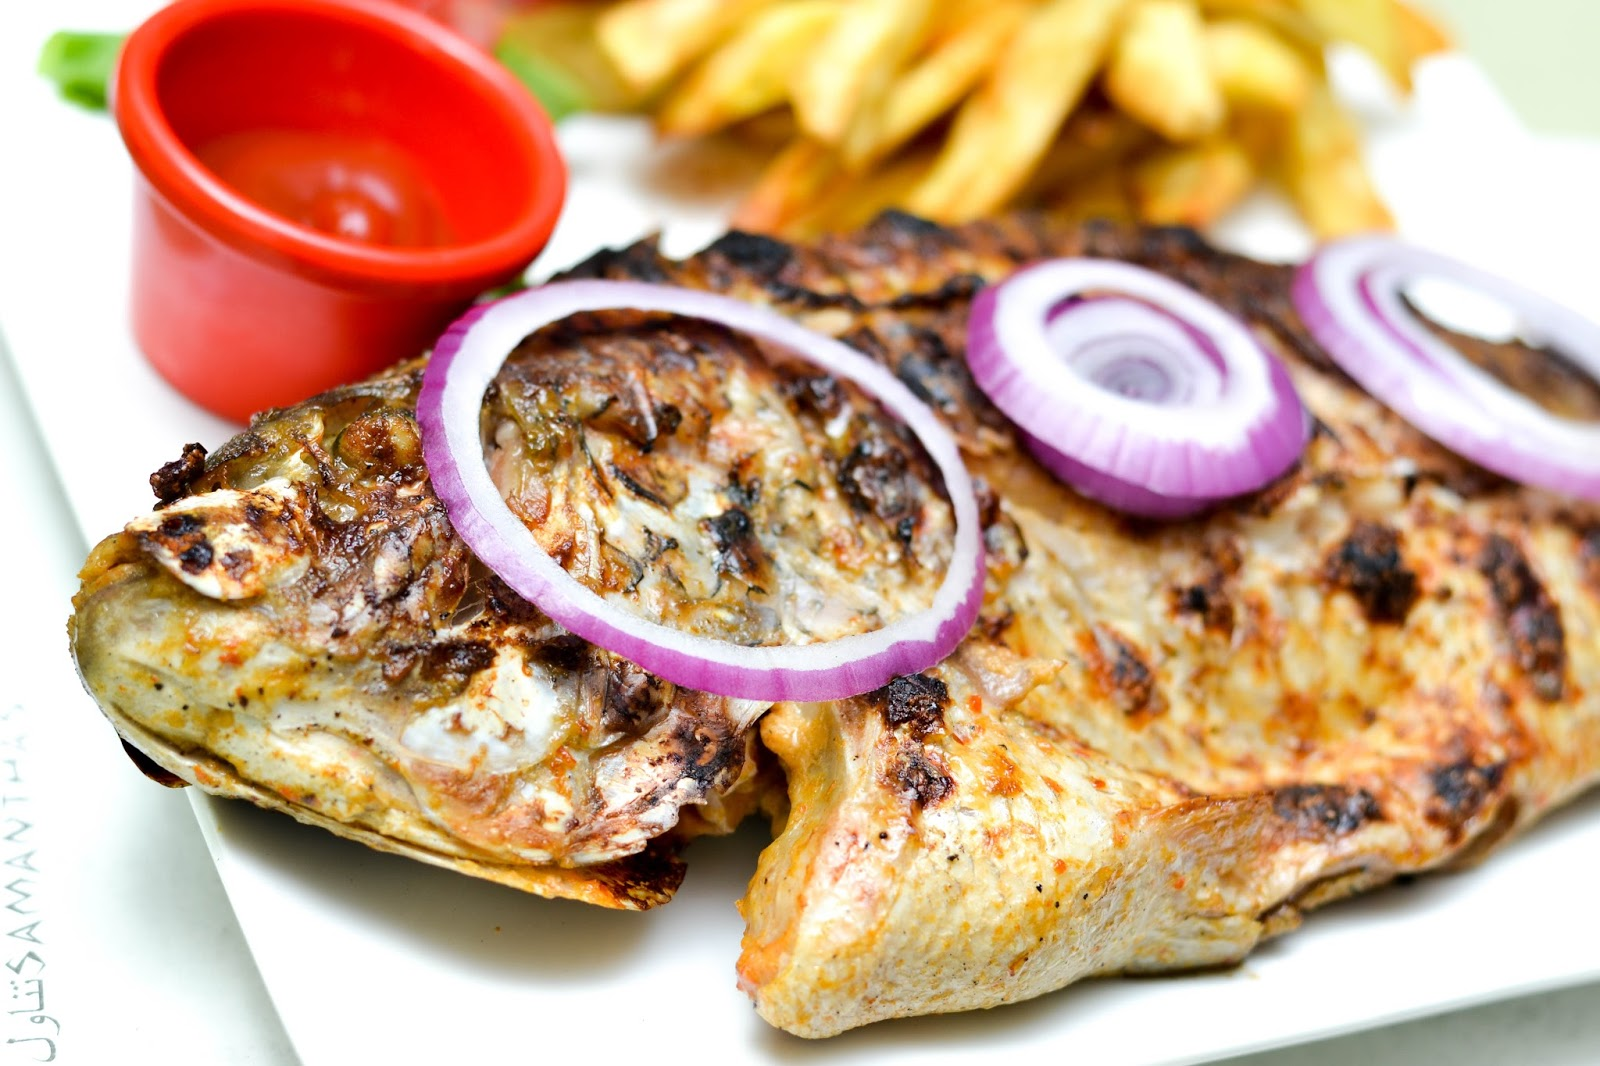 Grilled Tilapia fish in Nigeria